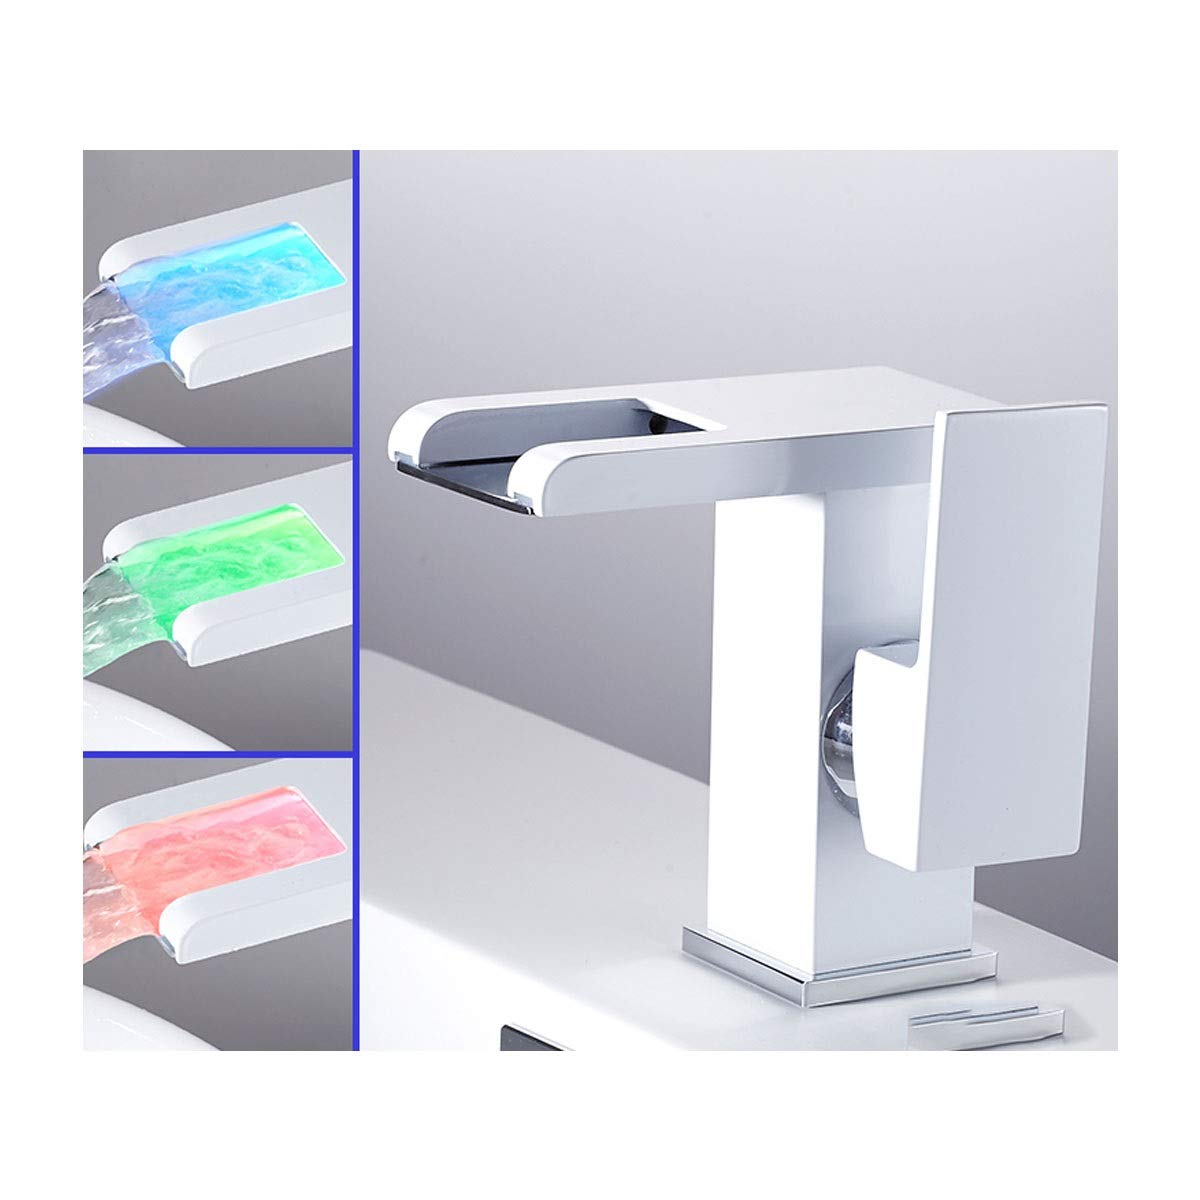 QIANZICAIDIANJIA Faucet, LED Temperature Control Faucet, Hot And Cold Water Faucet, Bathroom Creative New All-copper Basin Faucet stainless steel faucet (Color : White, Size : A) by QIANZICAIDIANJIA